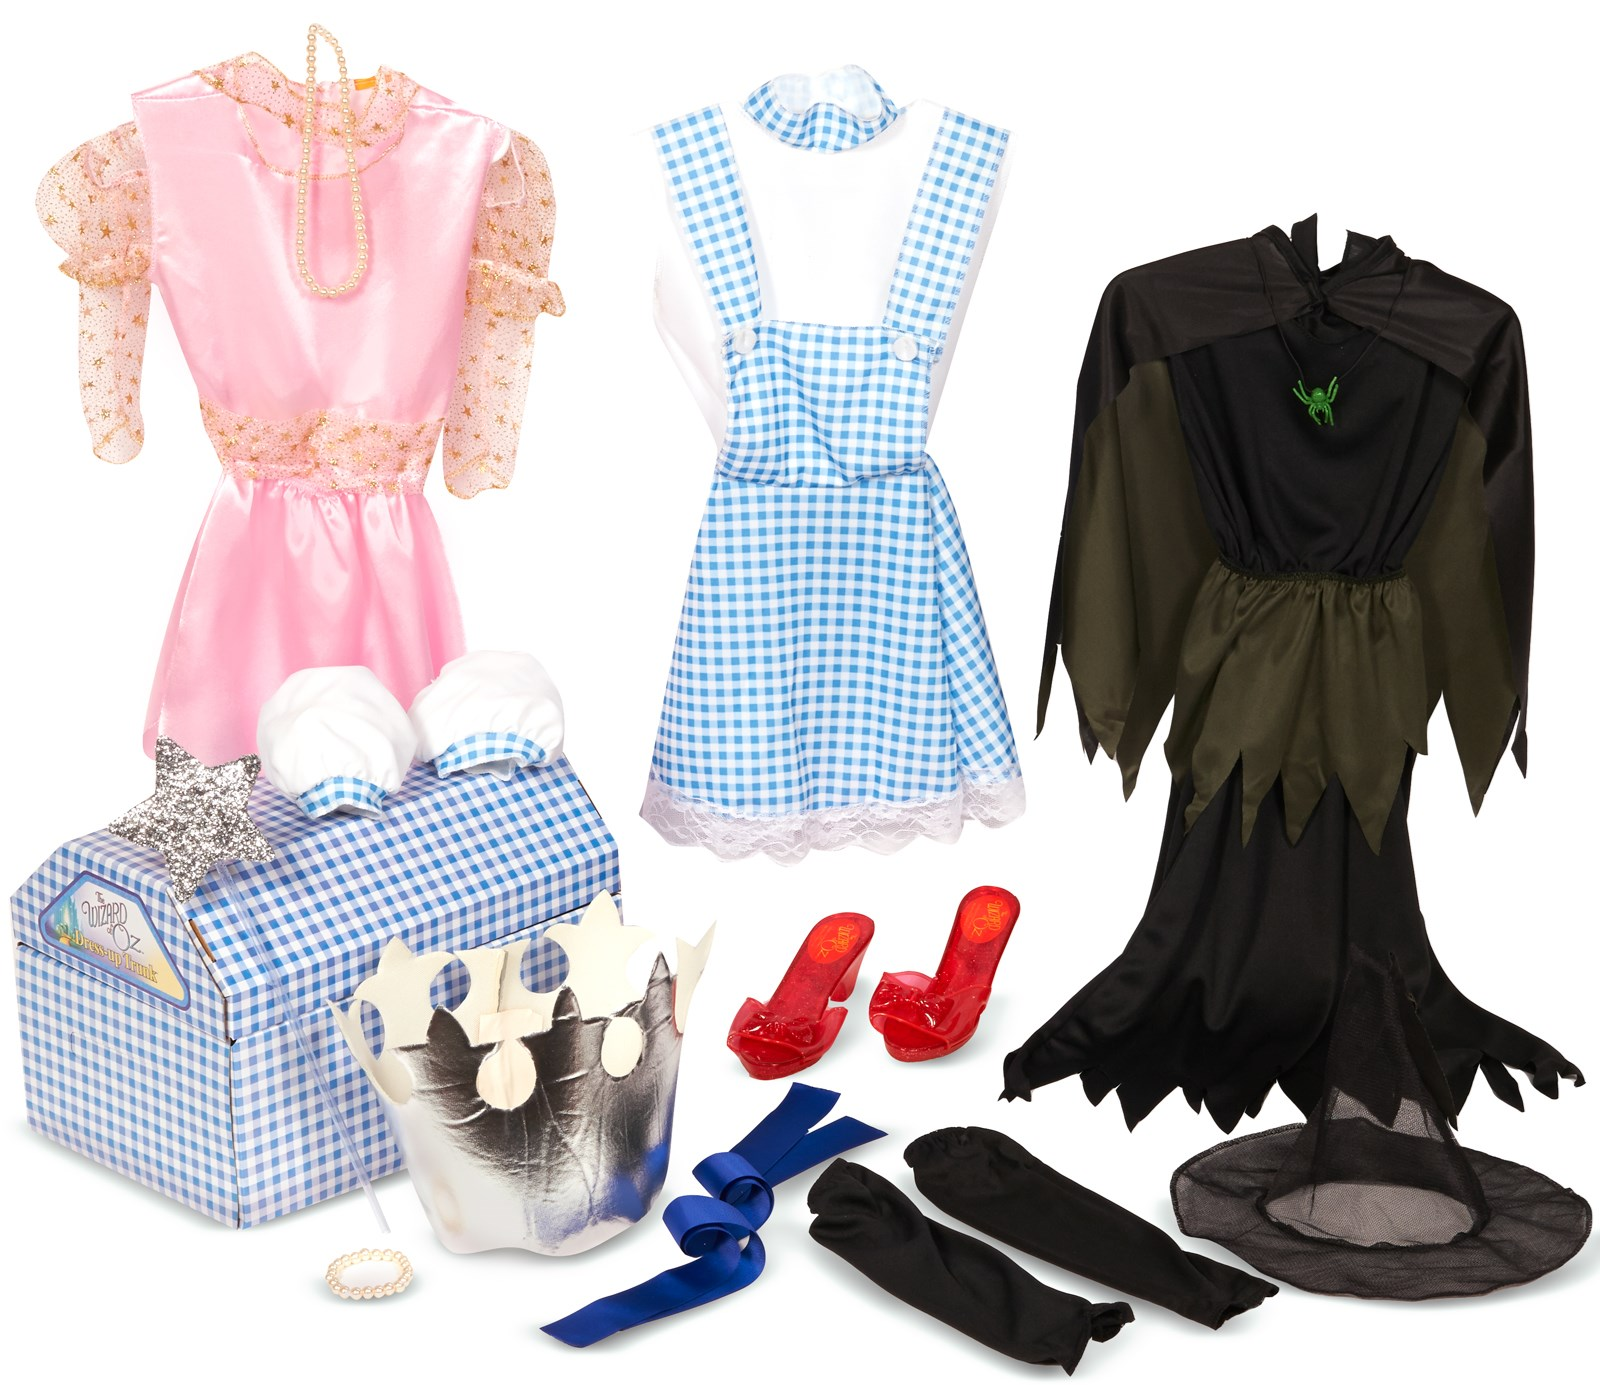 The Wizard of Oz Dress Up Trunk Child Costume Kits | BuyCostumes.com